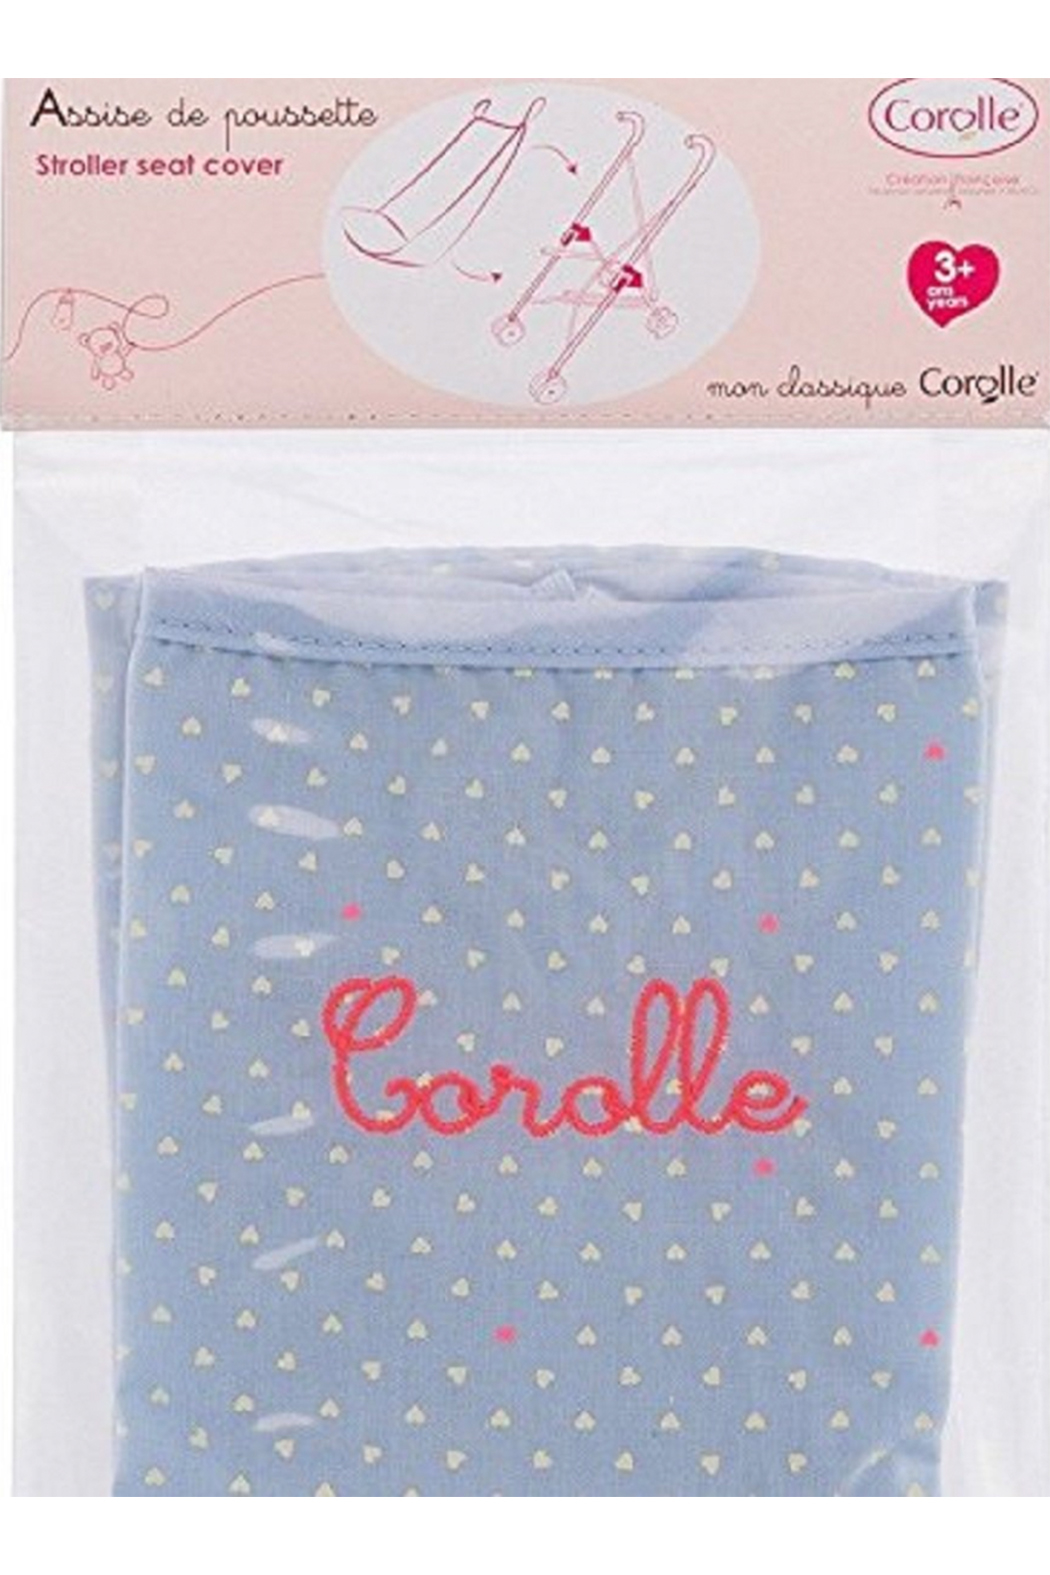 Corolle Umbrella Stroller Seat Cover - Main Image